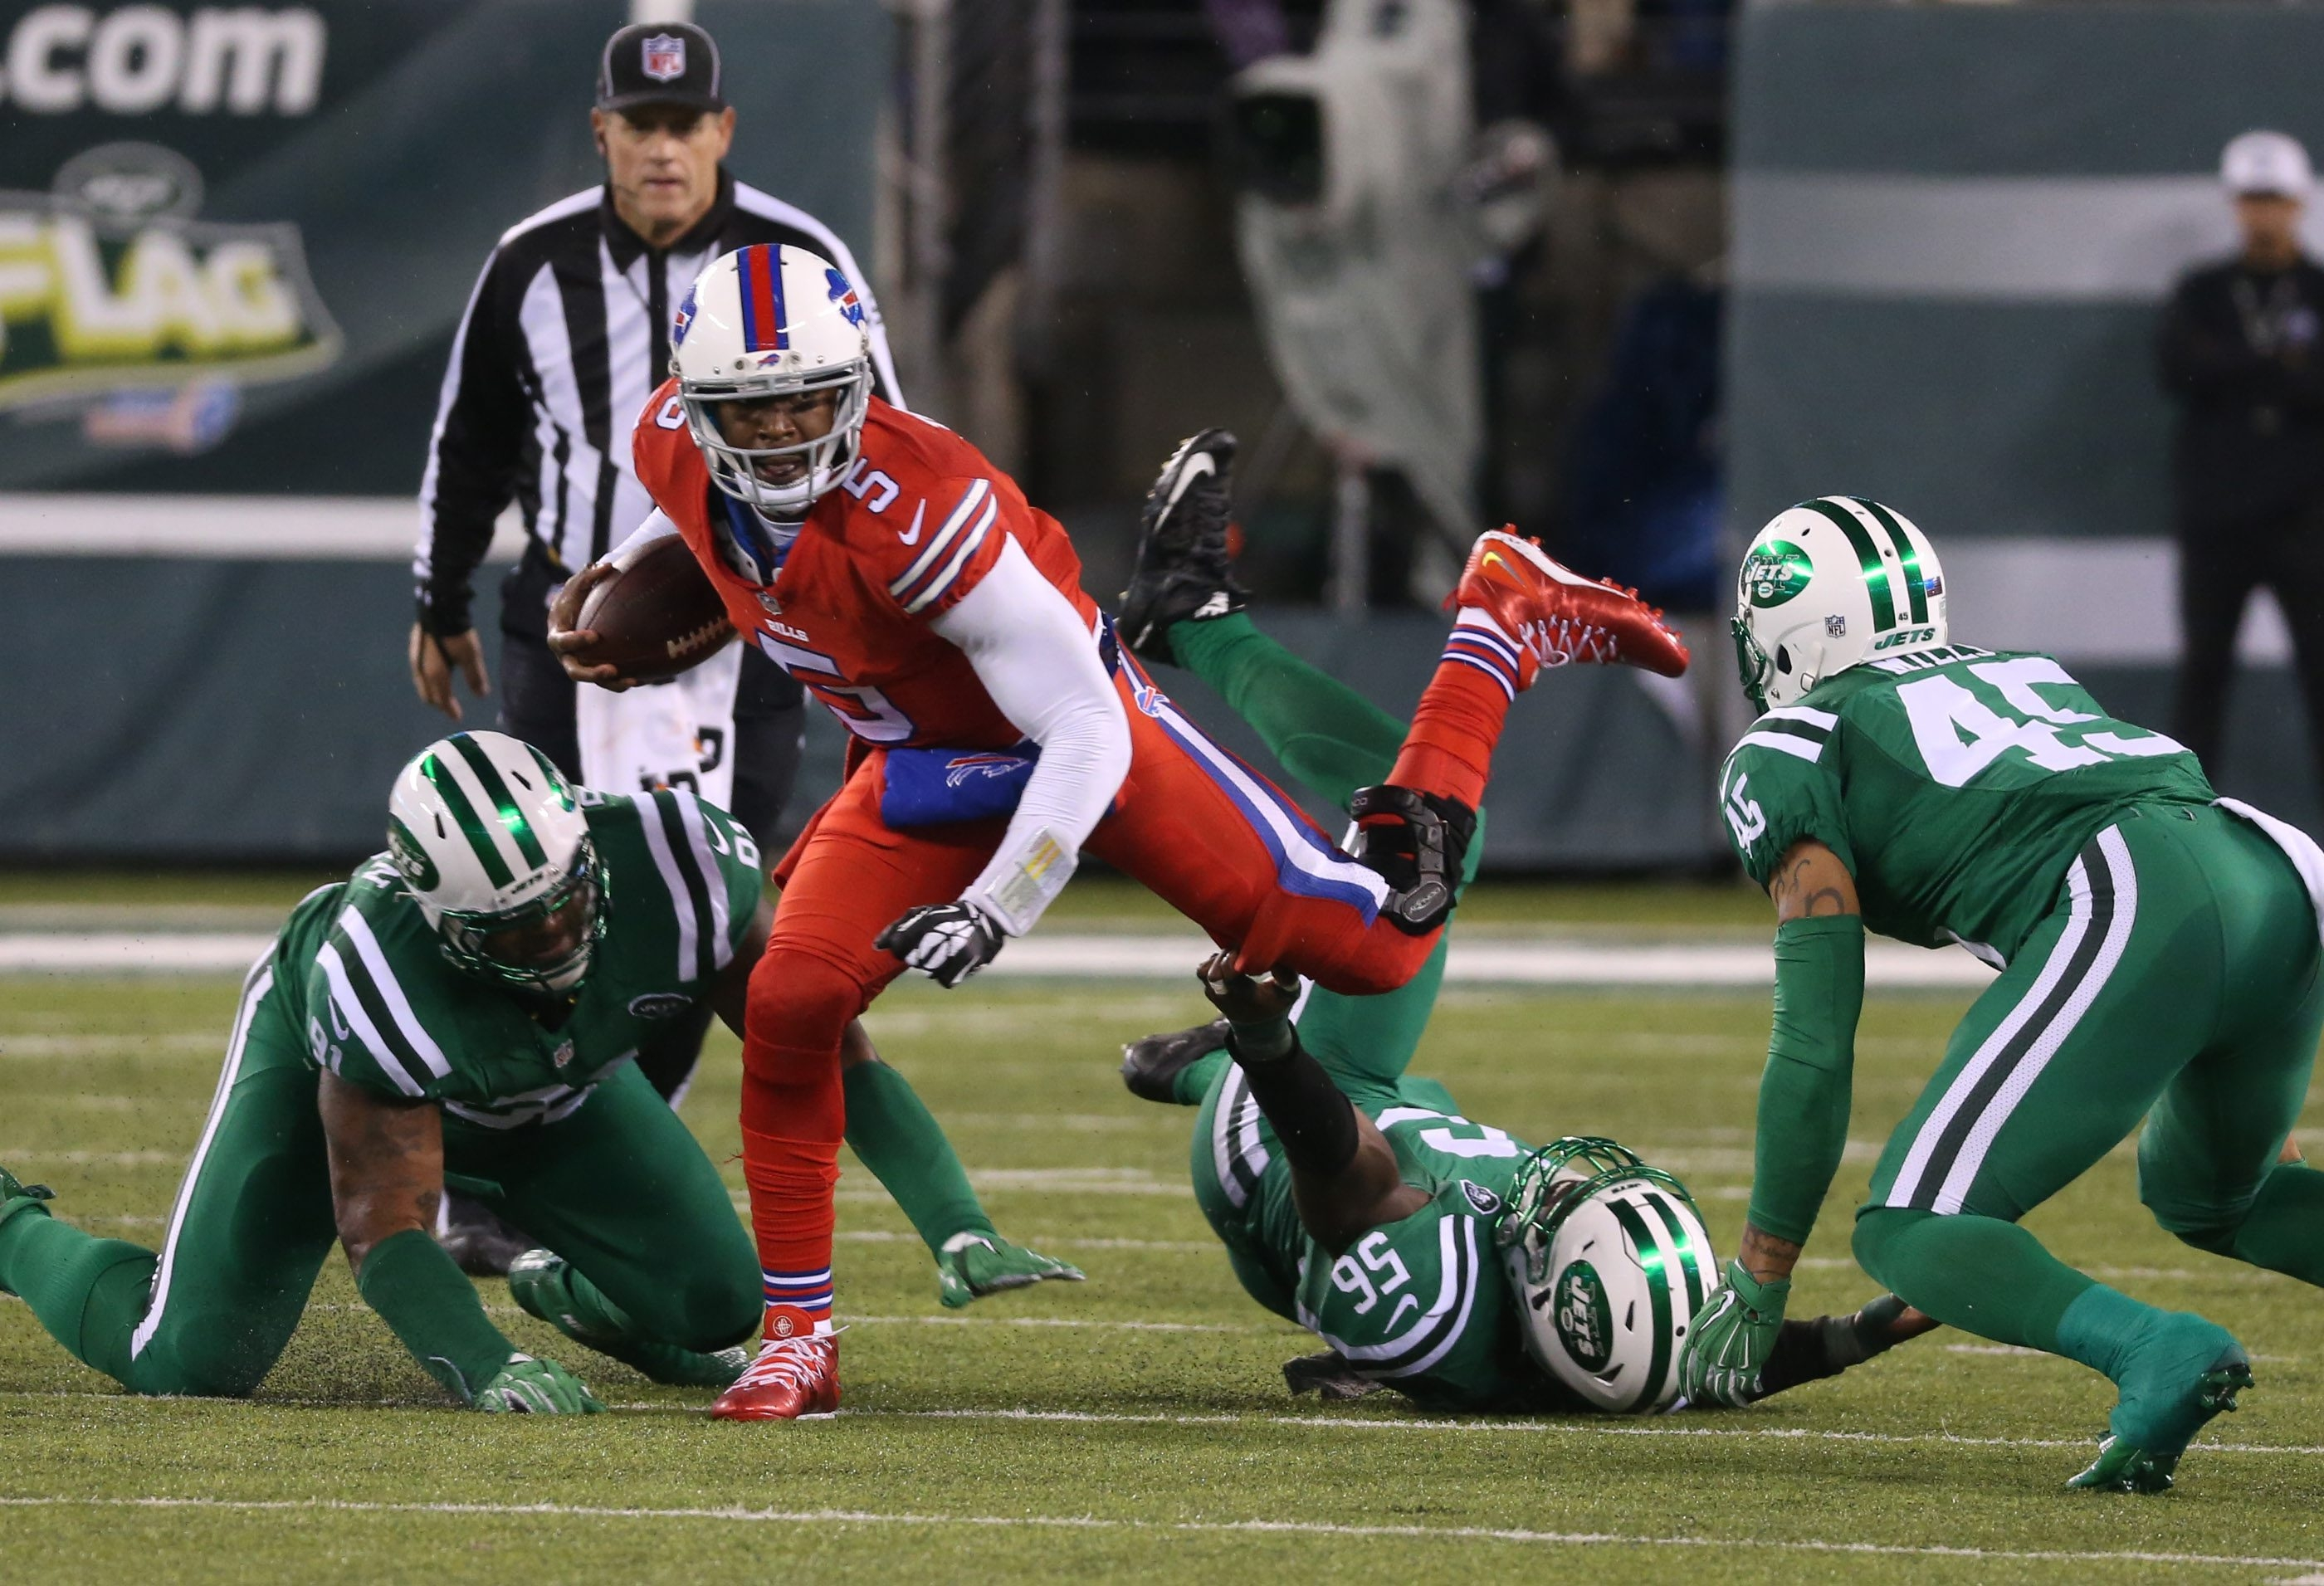 The Jets' defense recorded four sacks against Bills quarterback Tyrod Taylor when the teams met in the Meadowlands on Nov. 12. Pressure is on the Bills' offensive line to produce when the teams meet again Sunday. (James P. McCoy/Buffalo News)